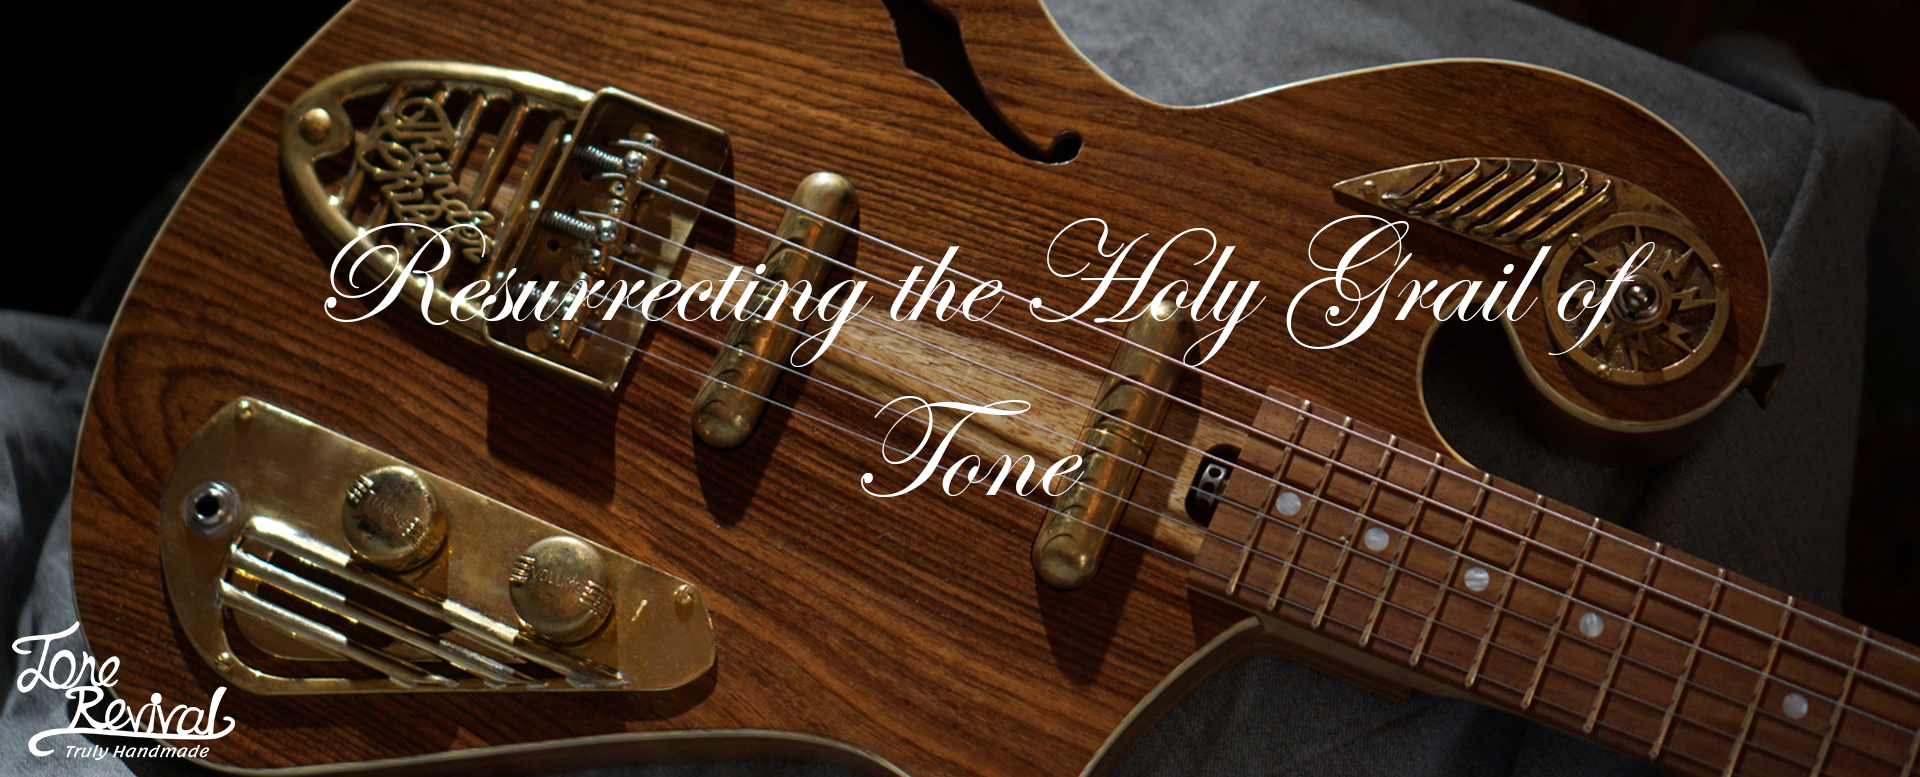 unique guitars - resurecting the Holy Grail of Tone by Tone Revival Guitars